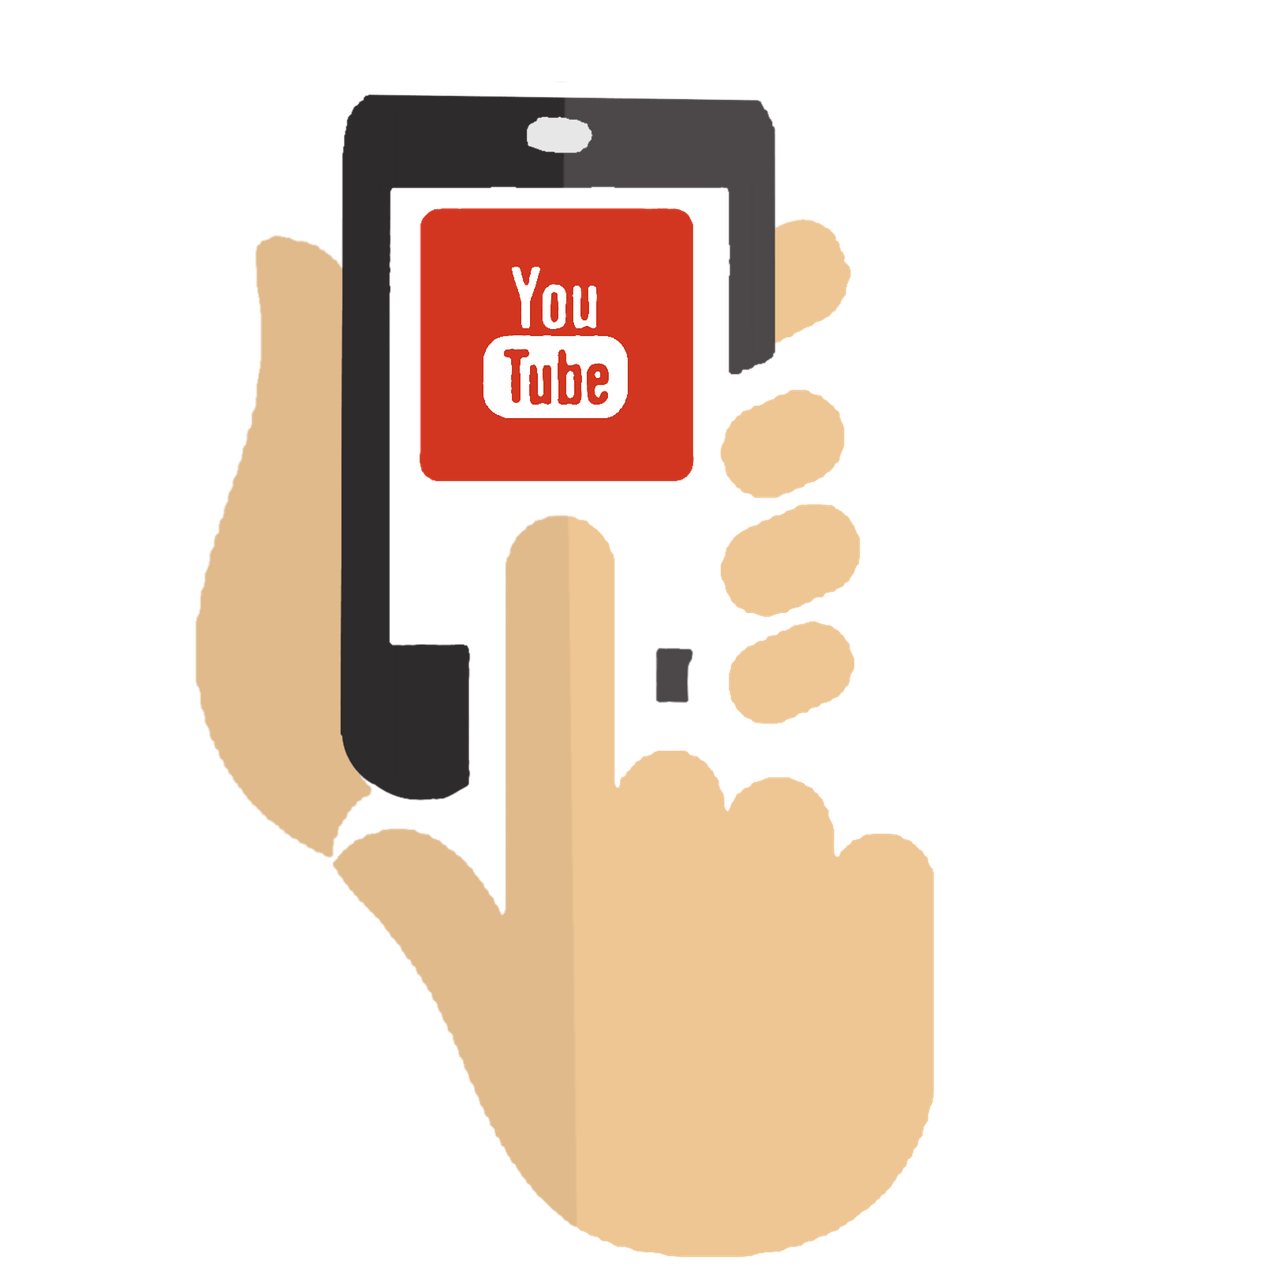 graphic of hands holding a phone with youtube open